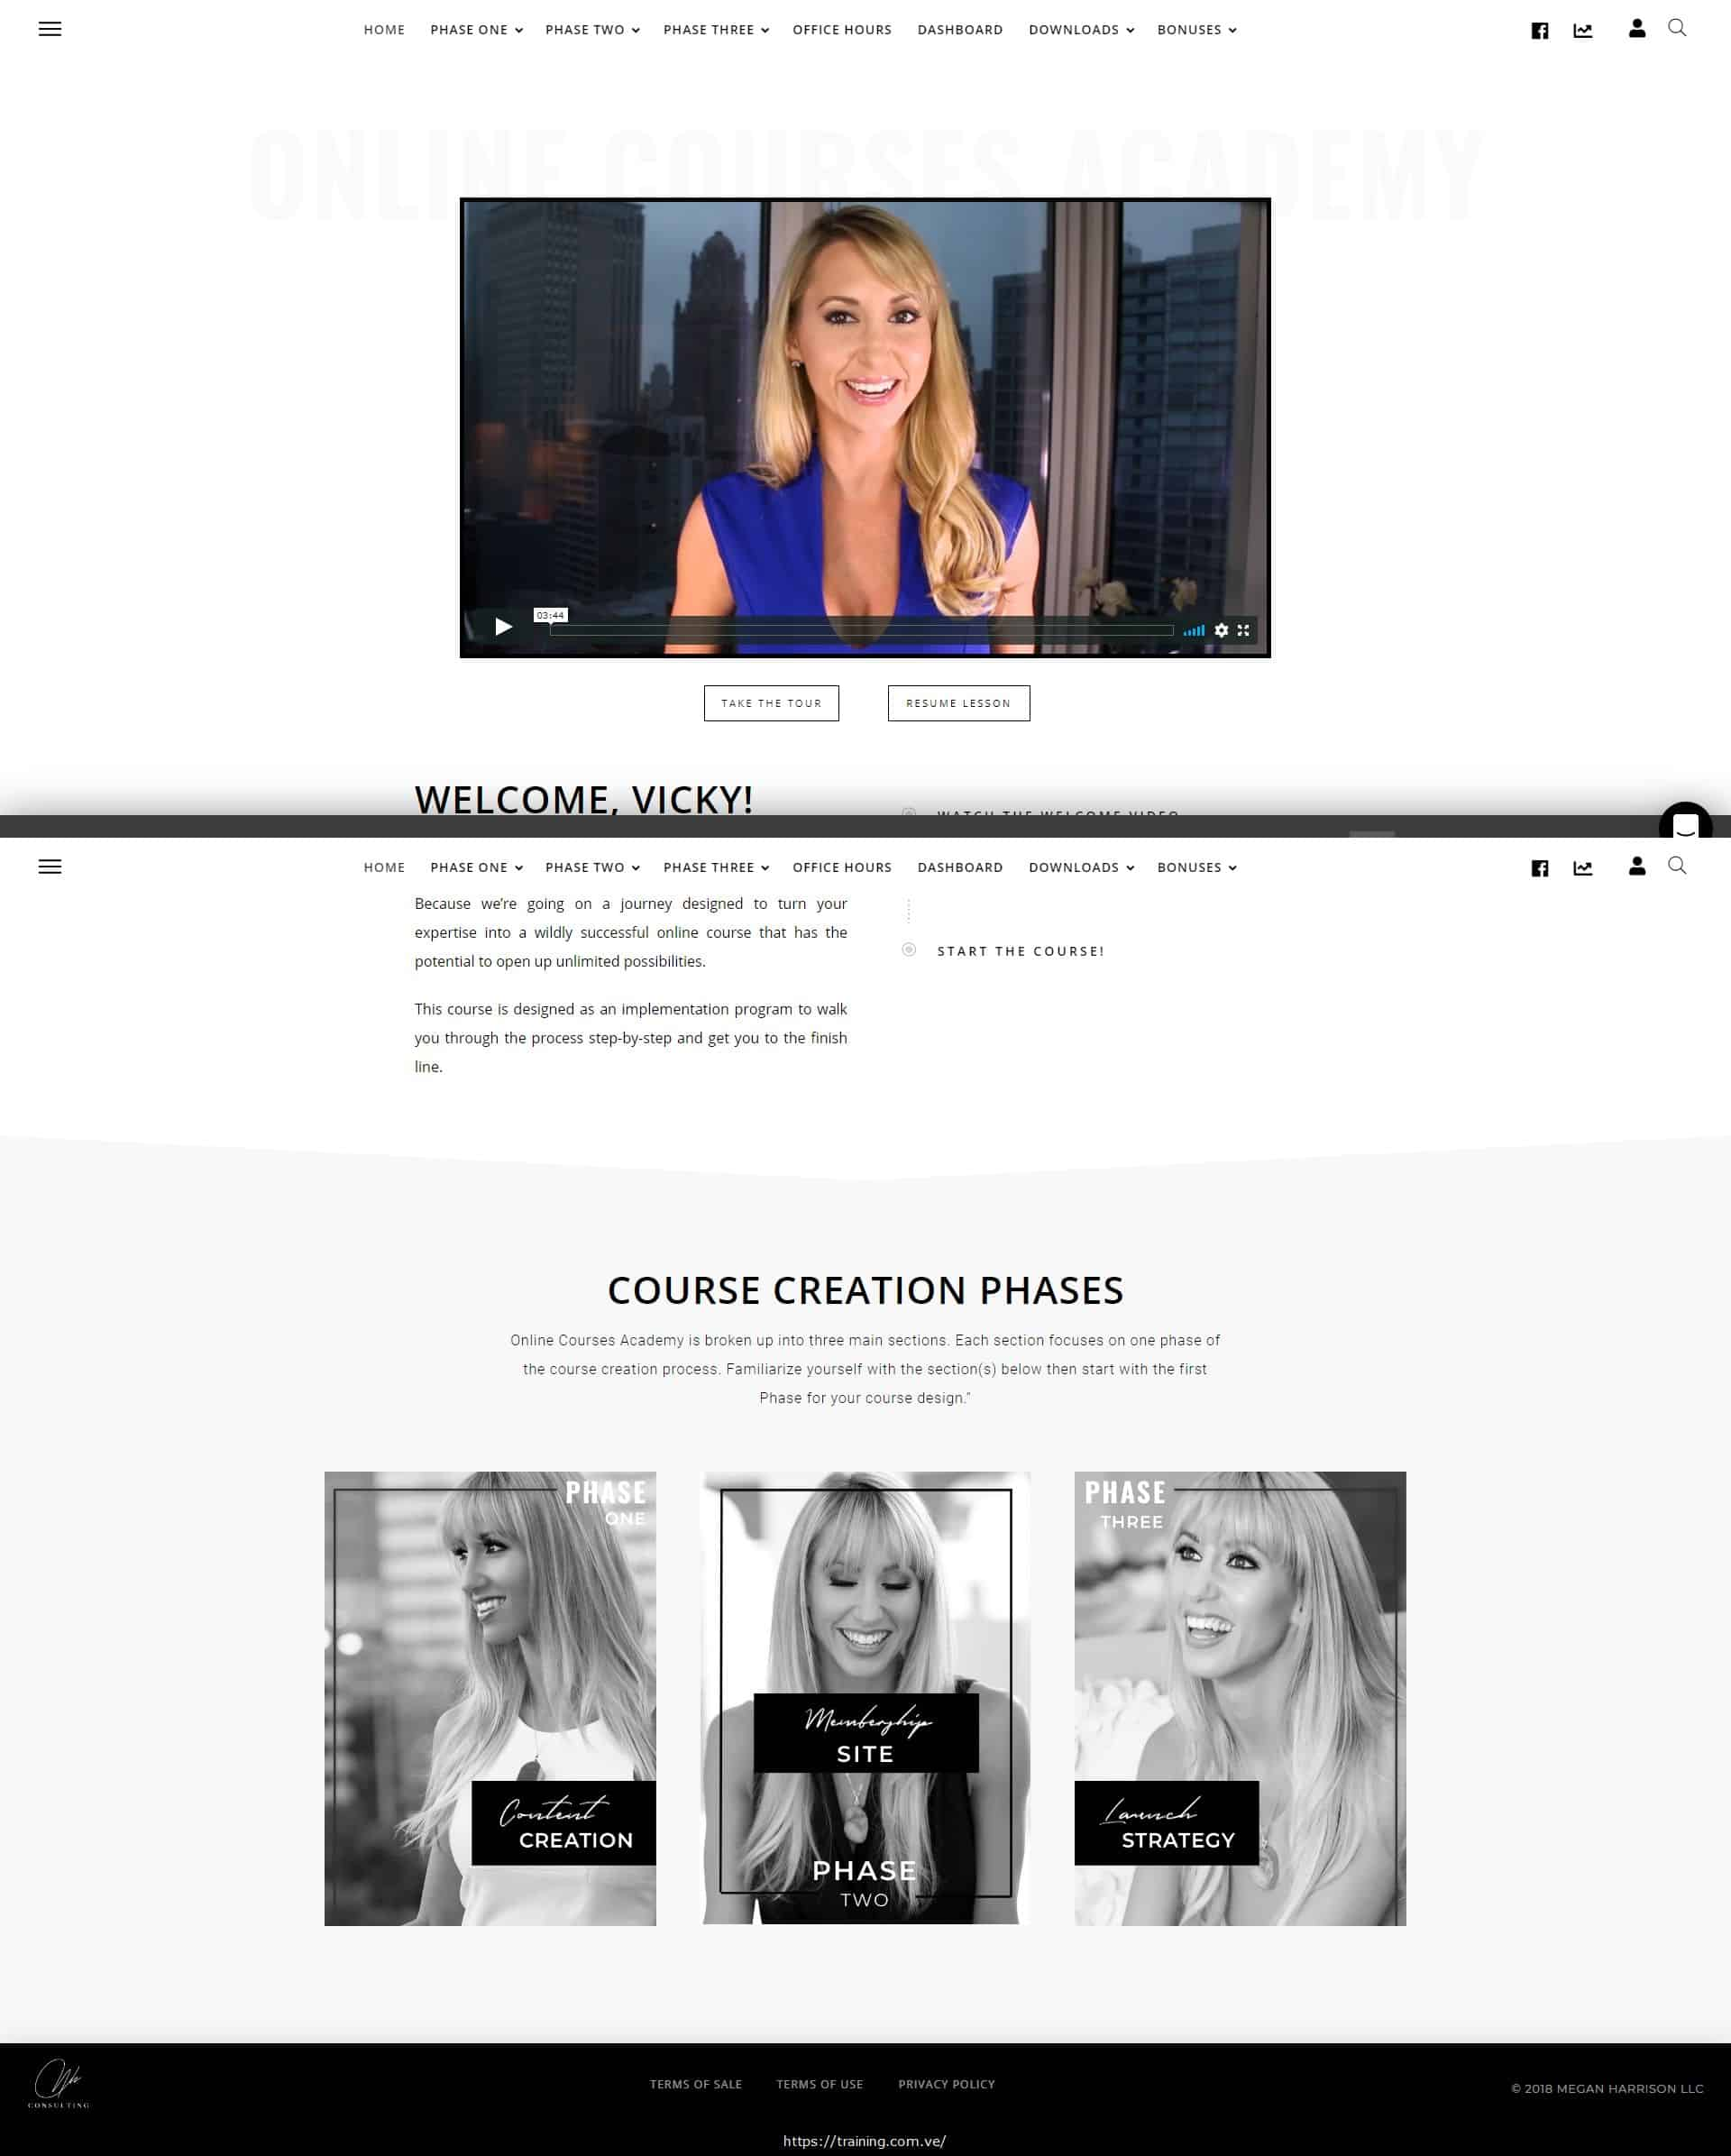 Online Course Academy by Megan K Harrison Download